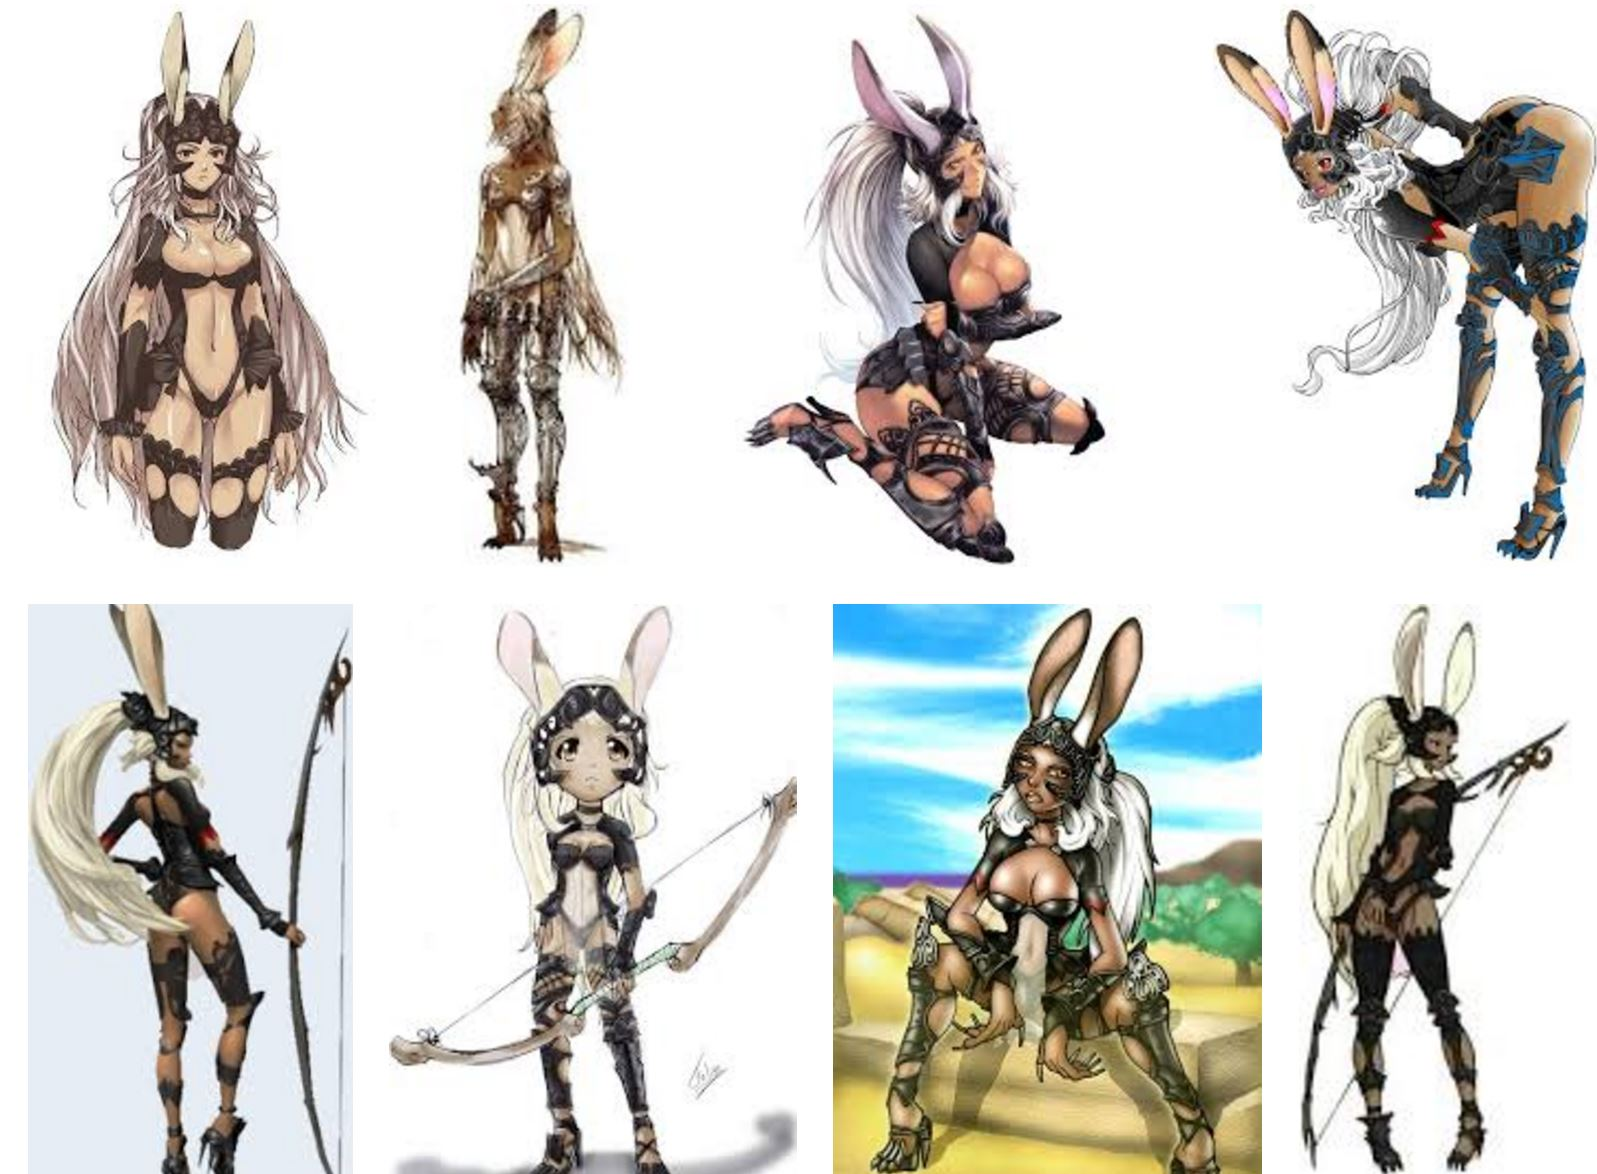 Final Fantasy XIV might be getting bunny people eventually